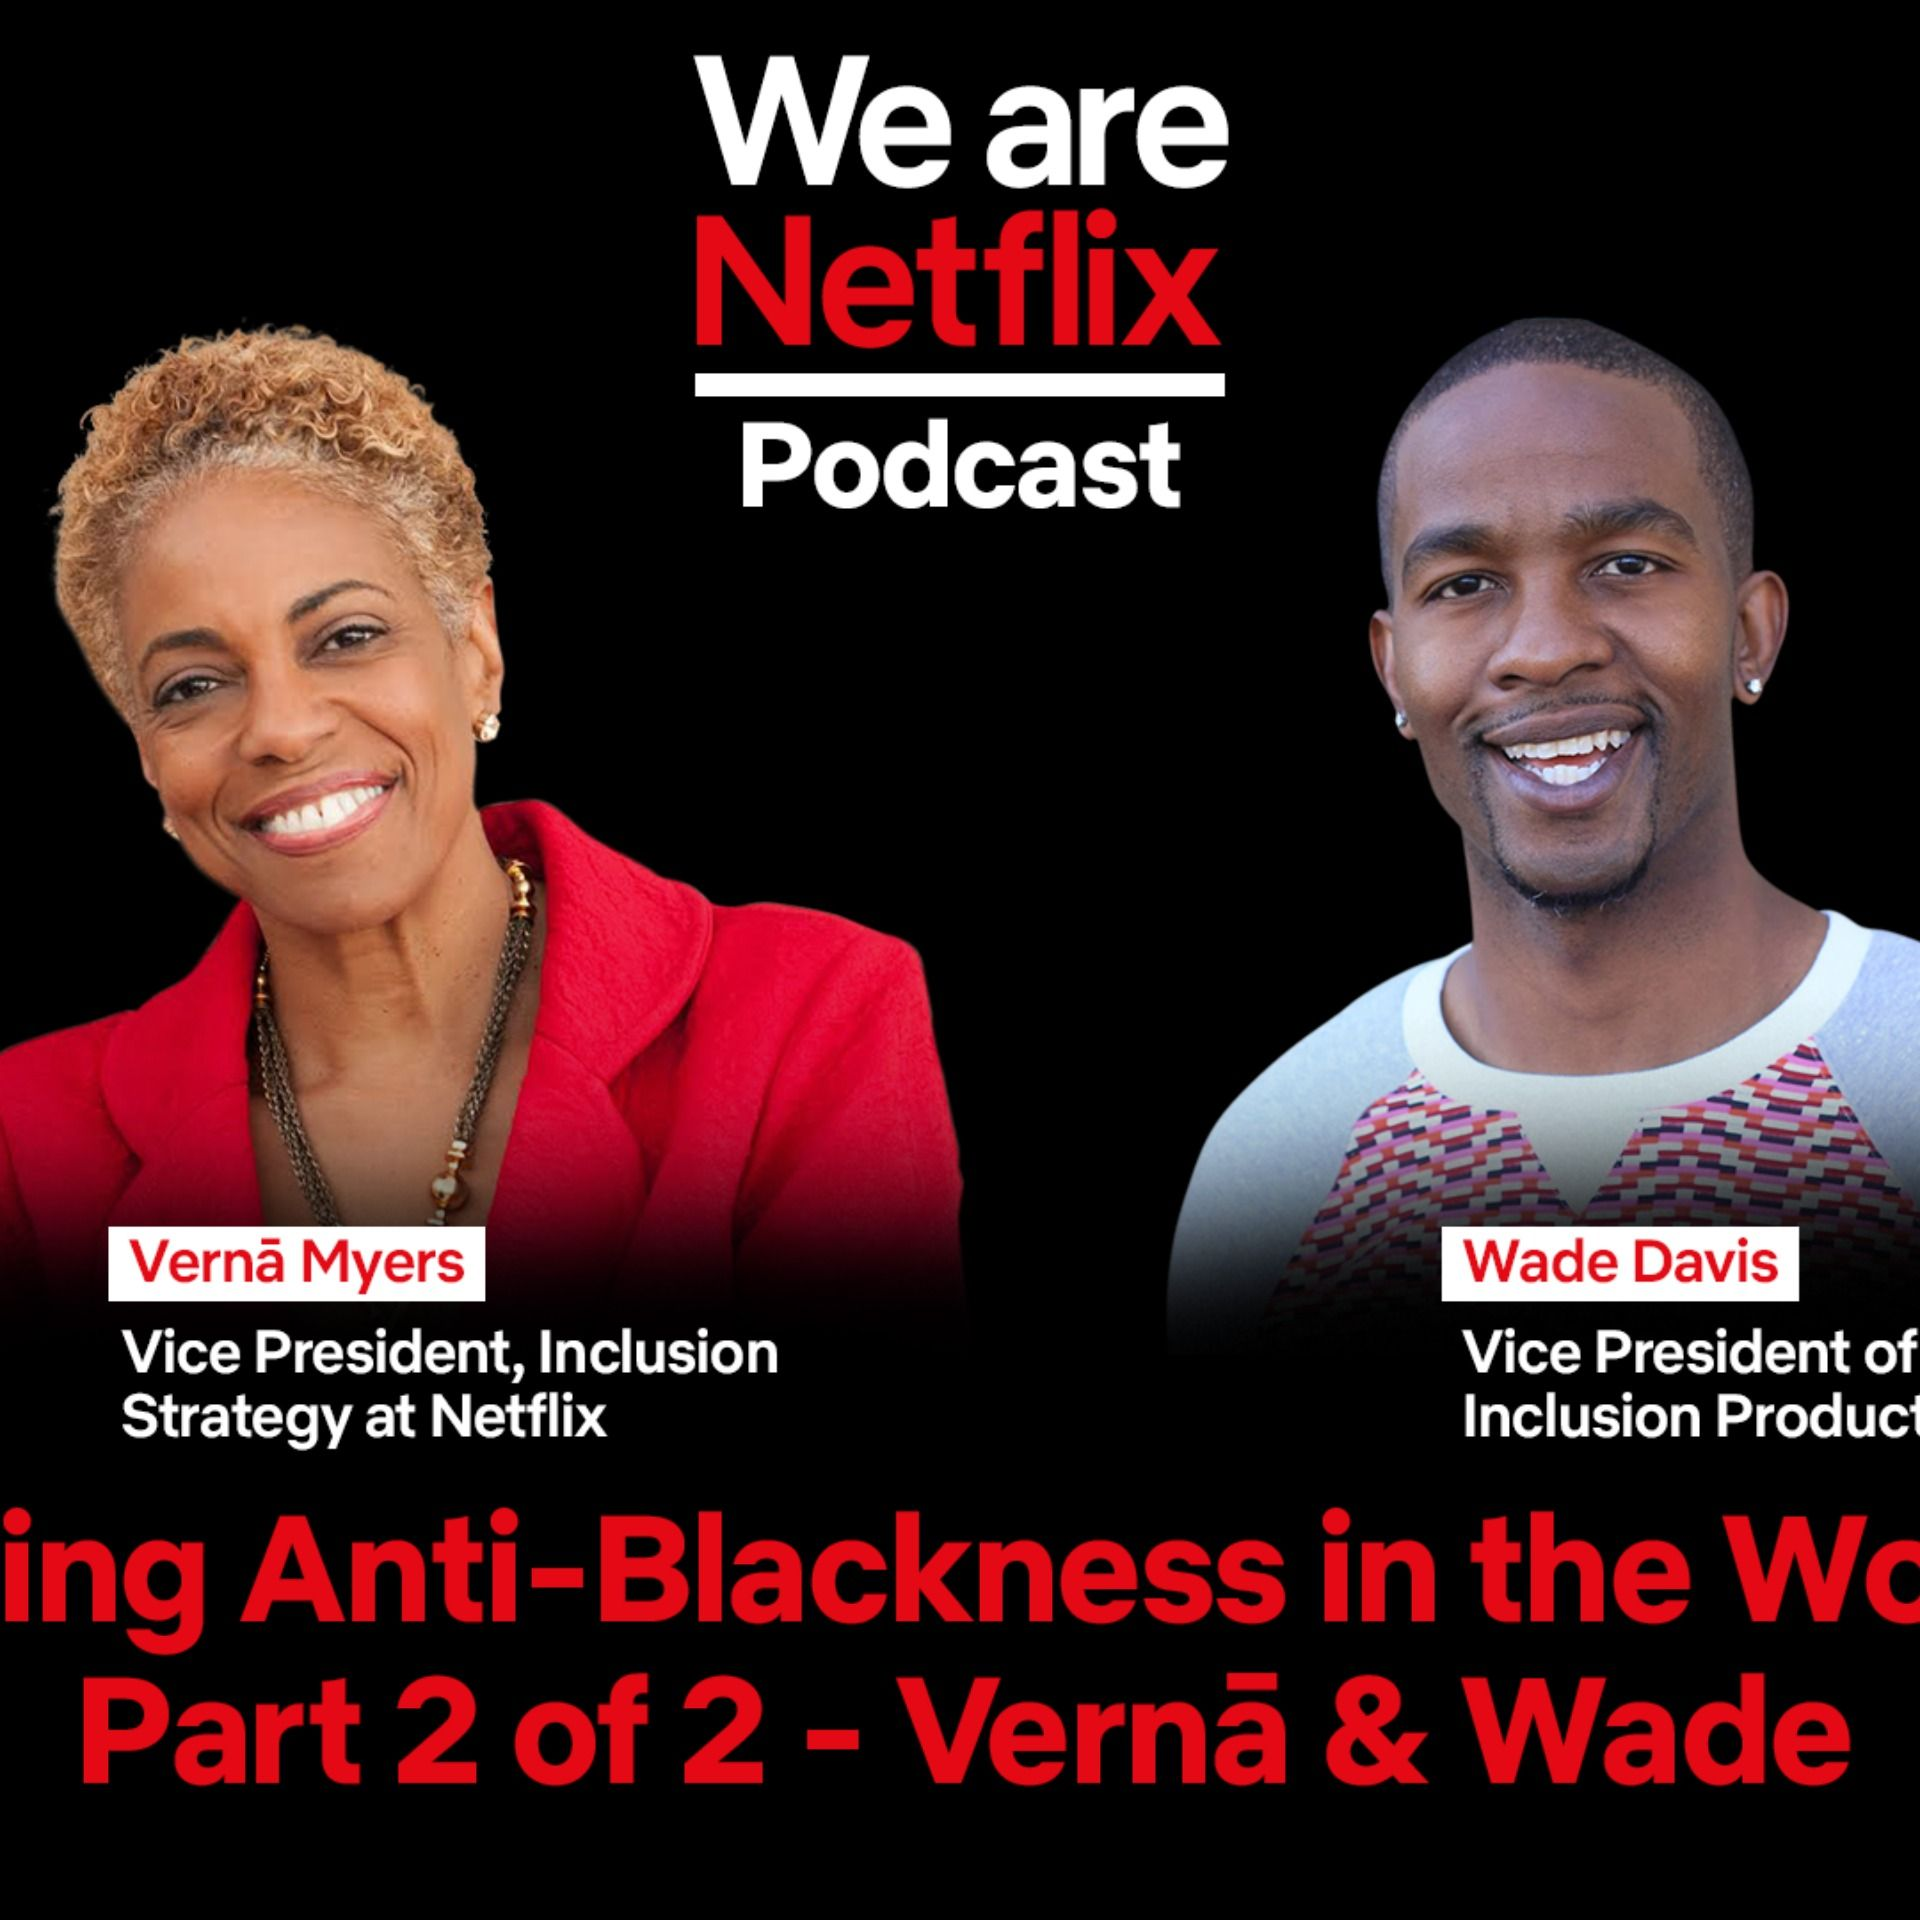 Addressing Anti-Black Racism and Promoting Allyship in the Workplace Part 2 of 2